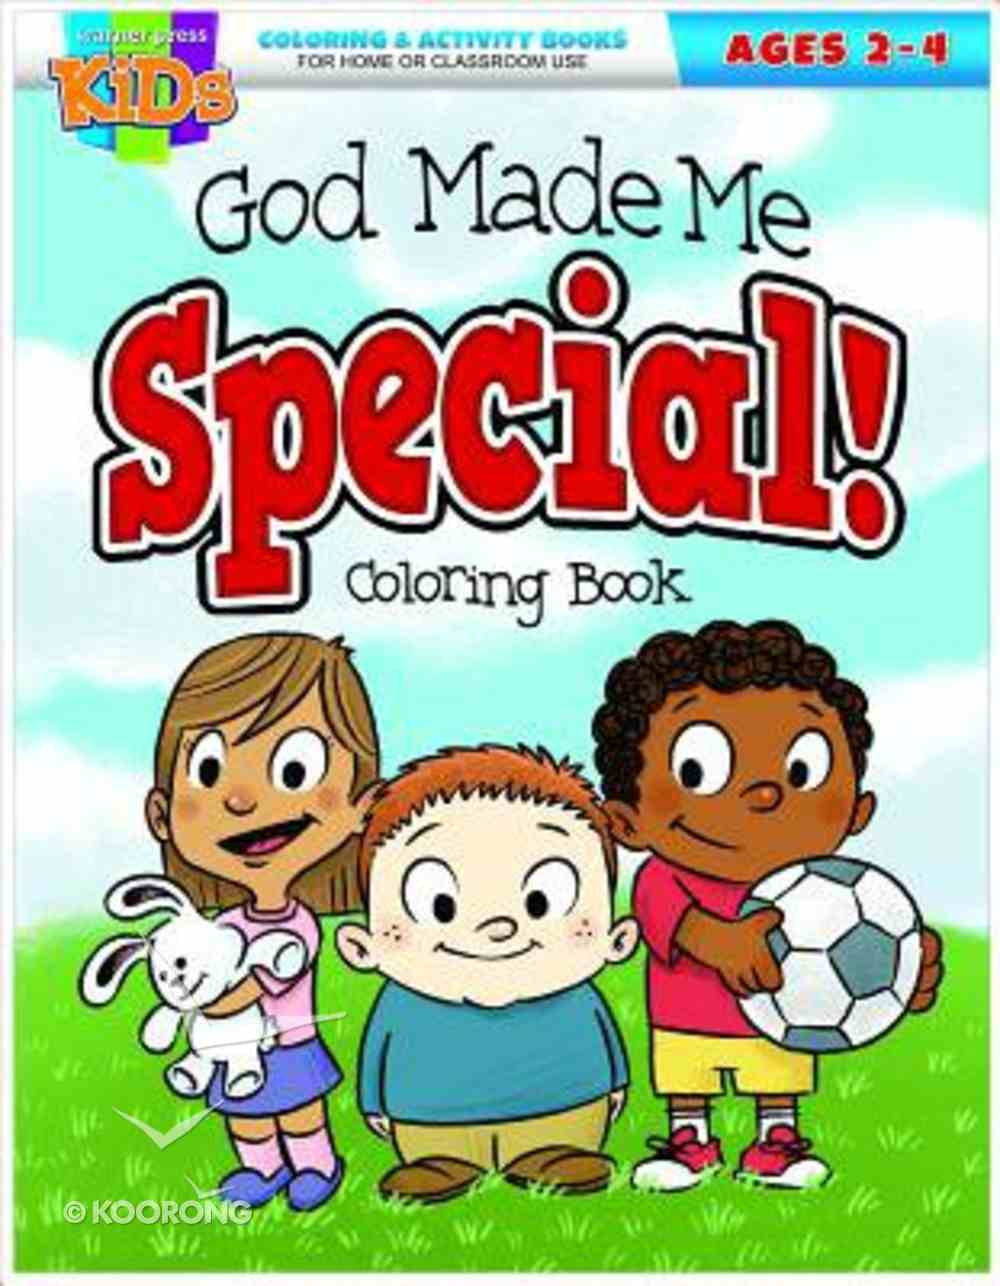 God Made Me Special (Ages 2-4, Reproducible) (Warner Press Colouring/activity Under 5's Series) Paperback